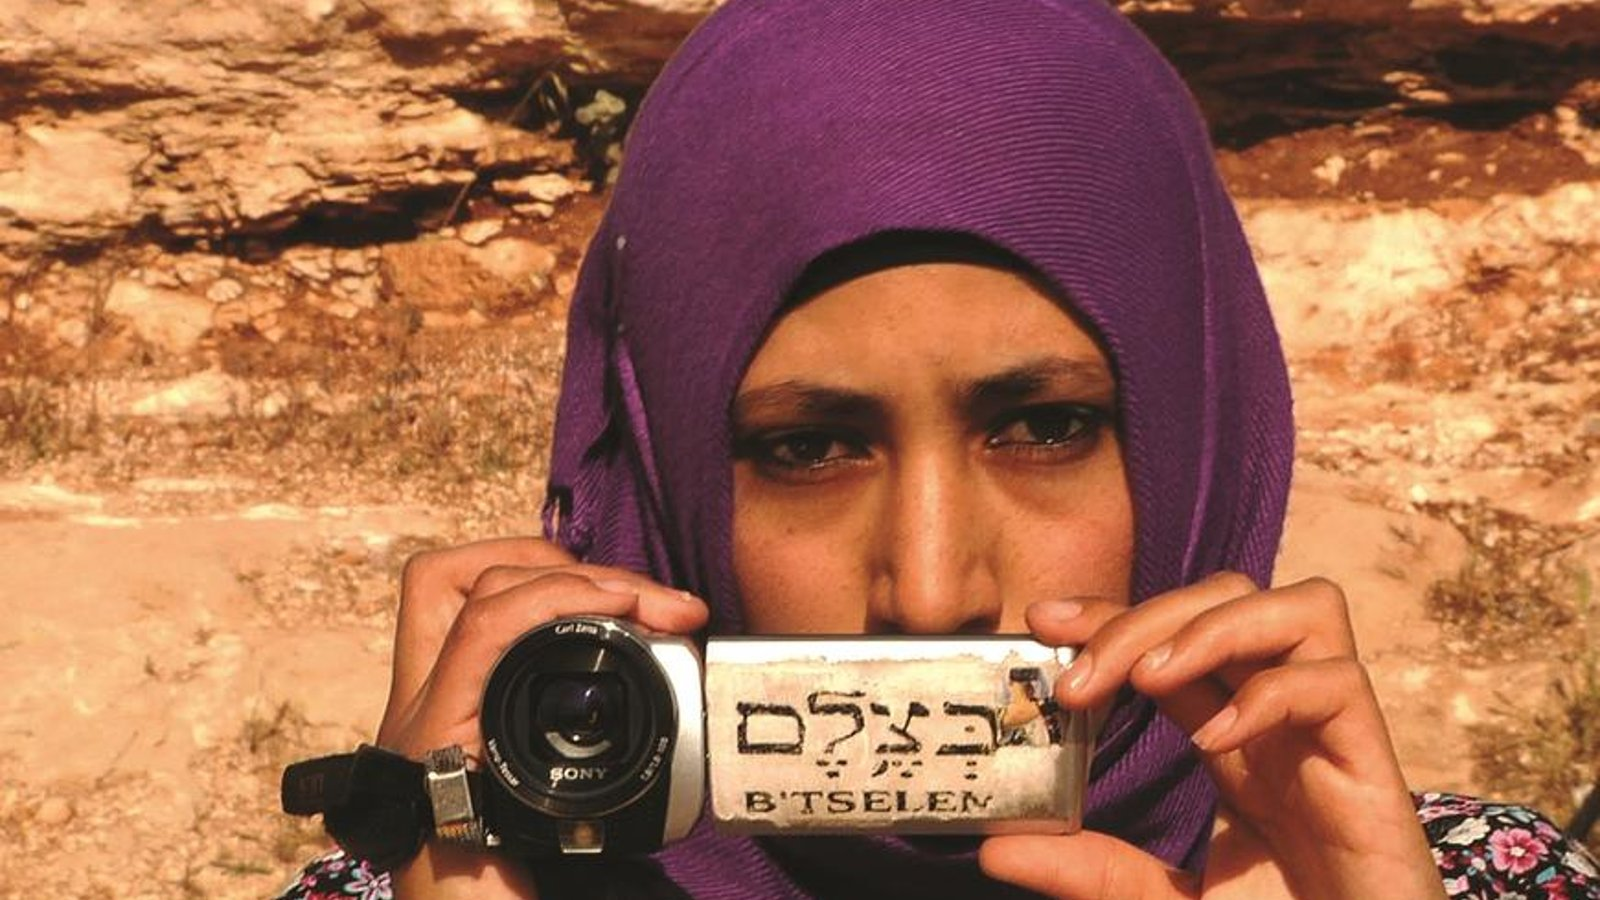 In the Image - Palestinian Women Capture the Occupation